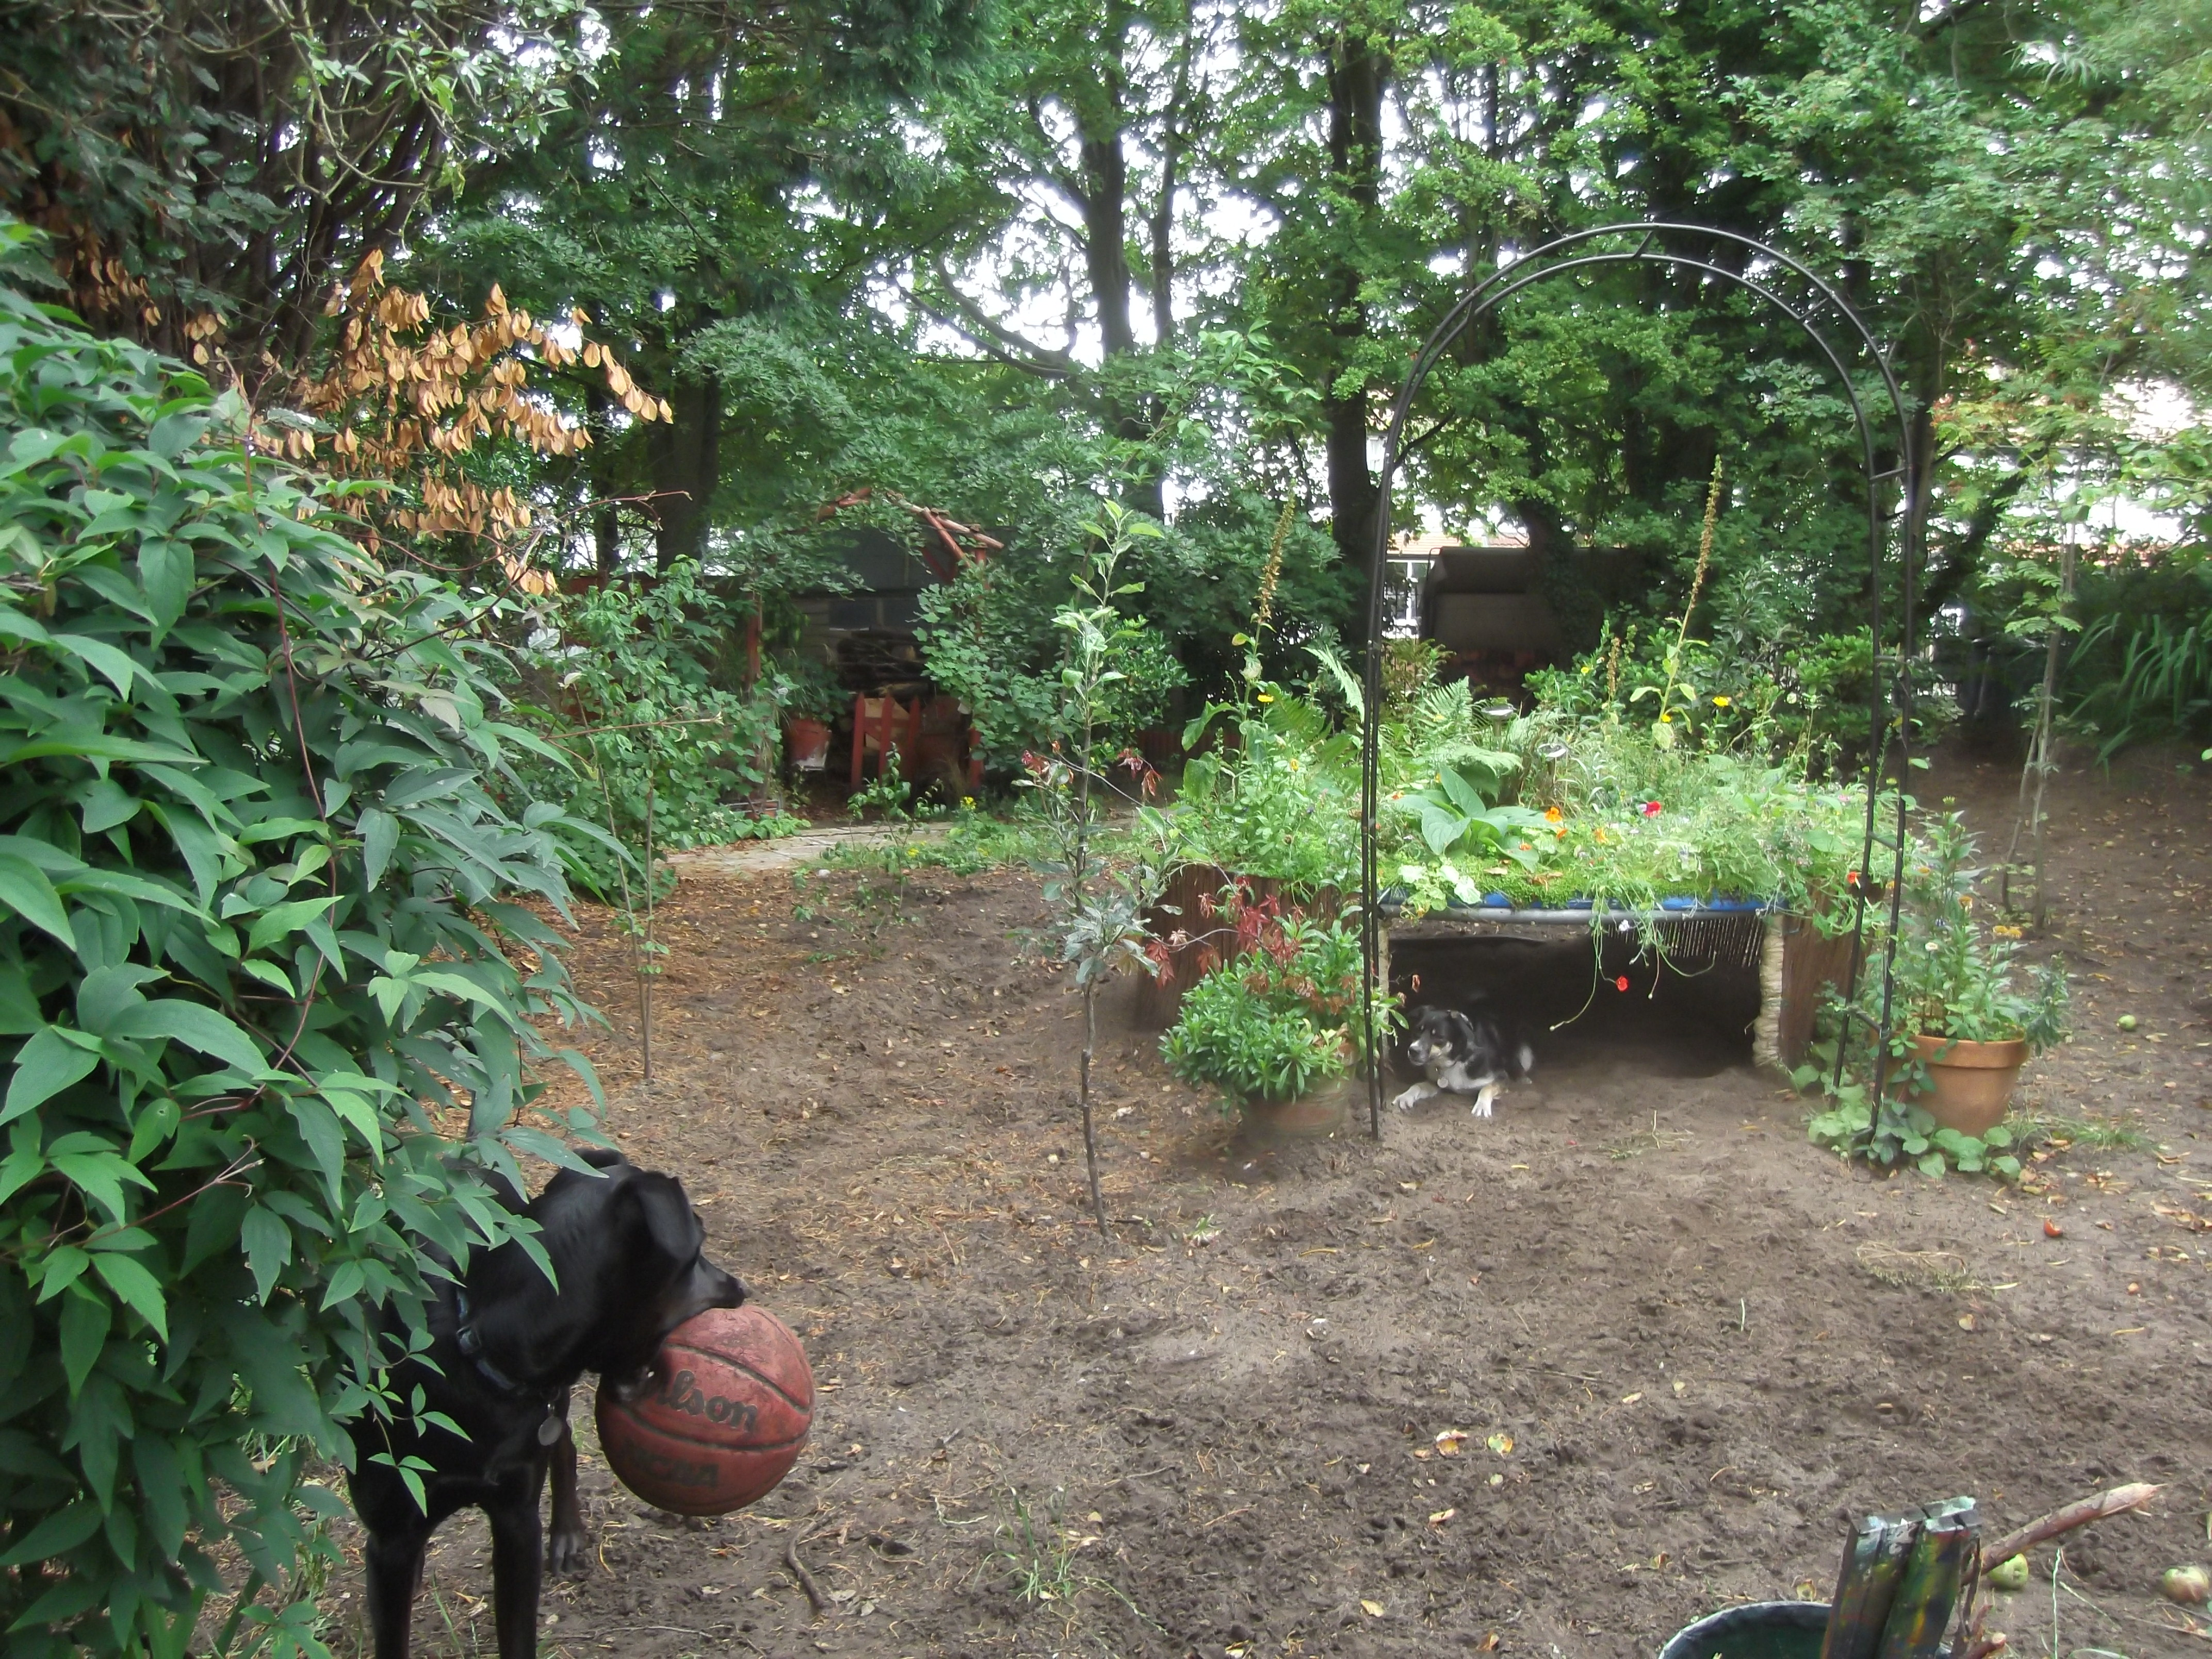 Landscaping Muddy Yard : Garden ideas uk on a budget we provide articles